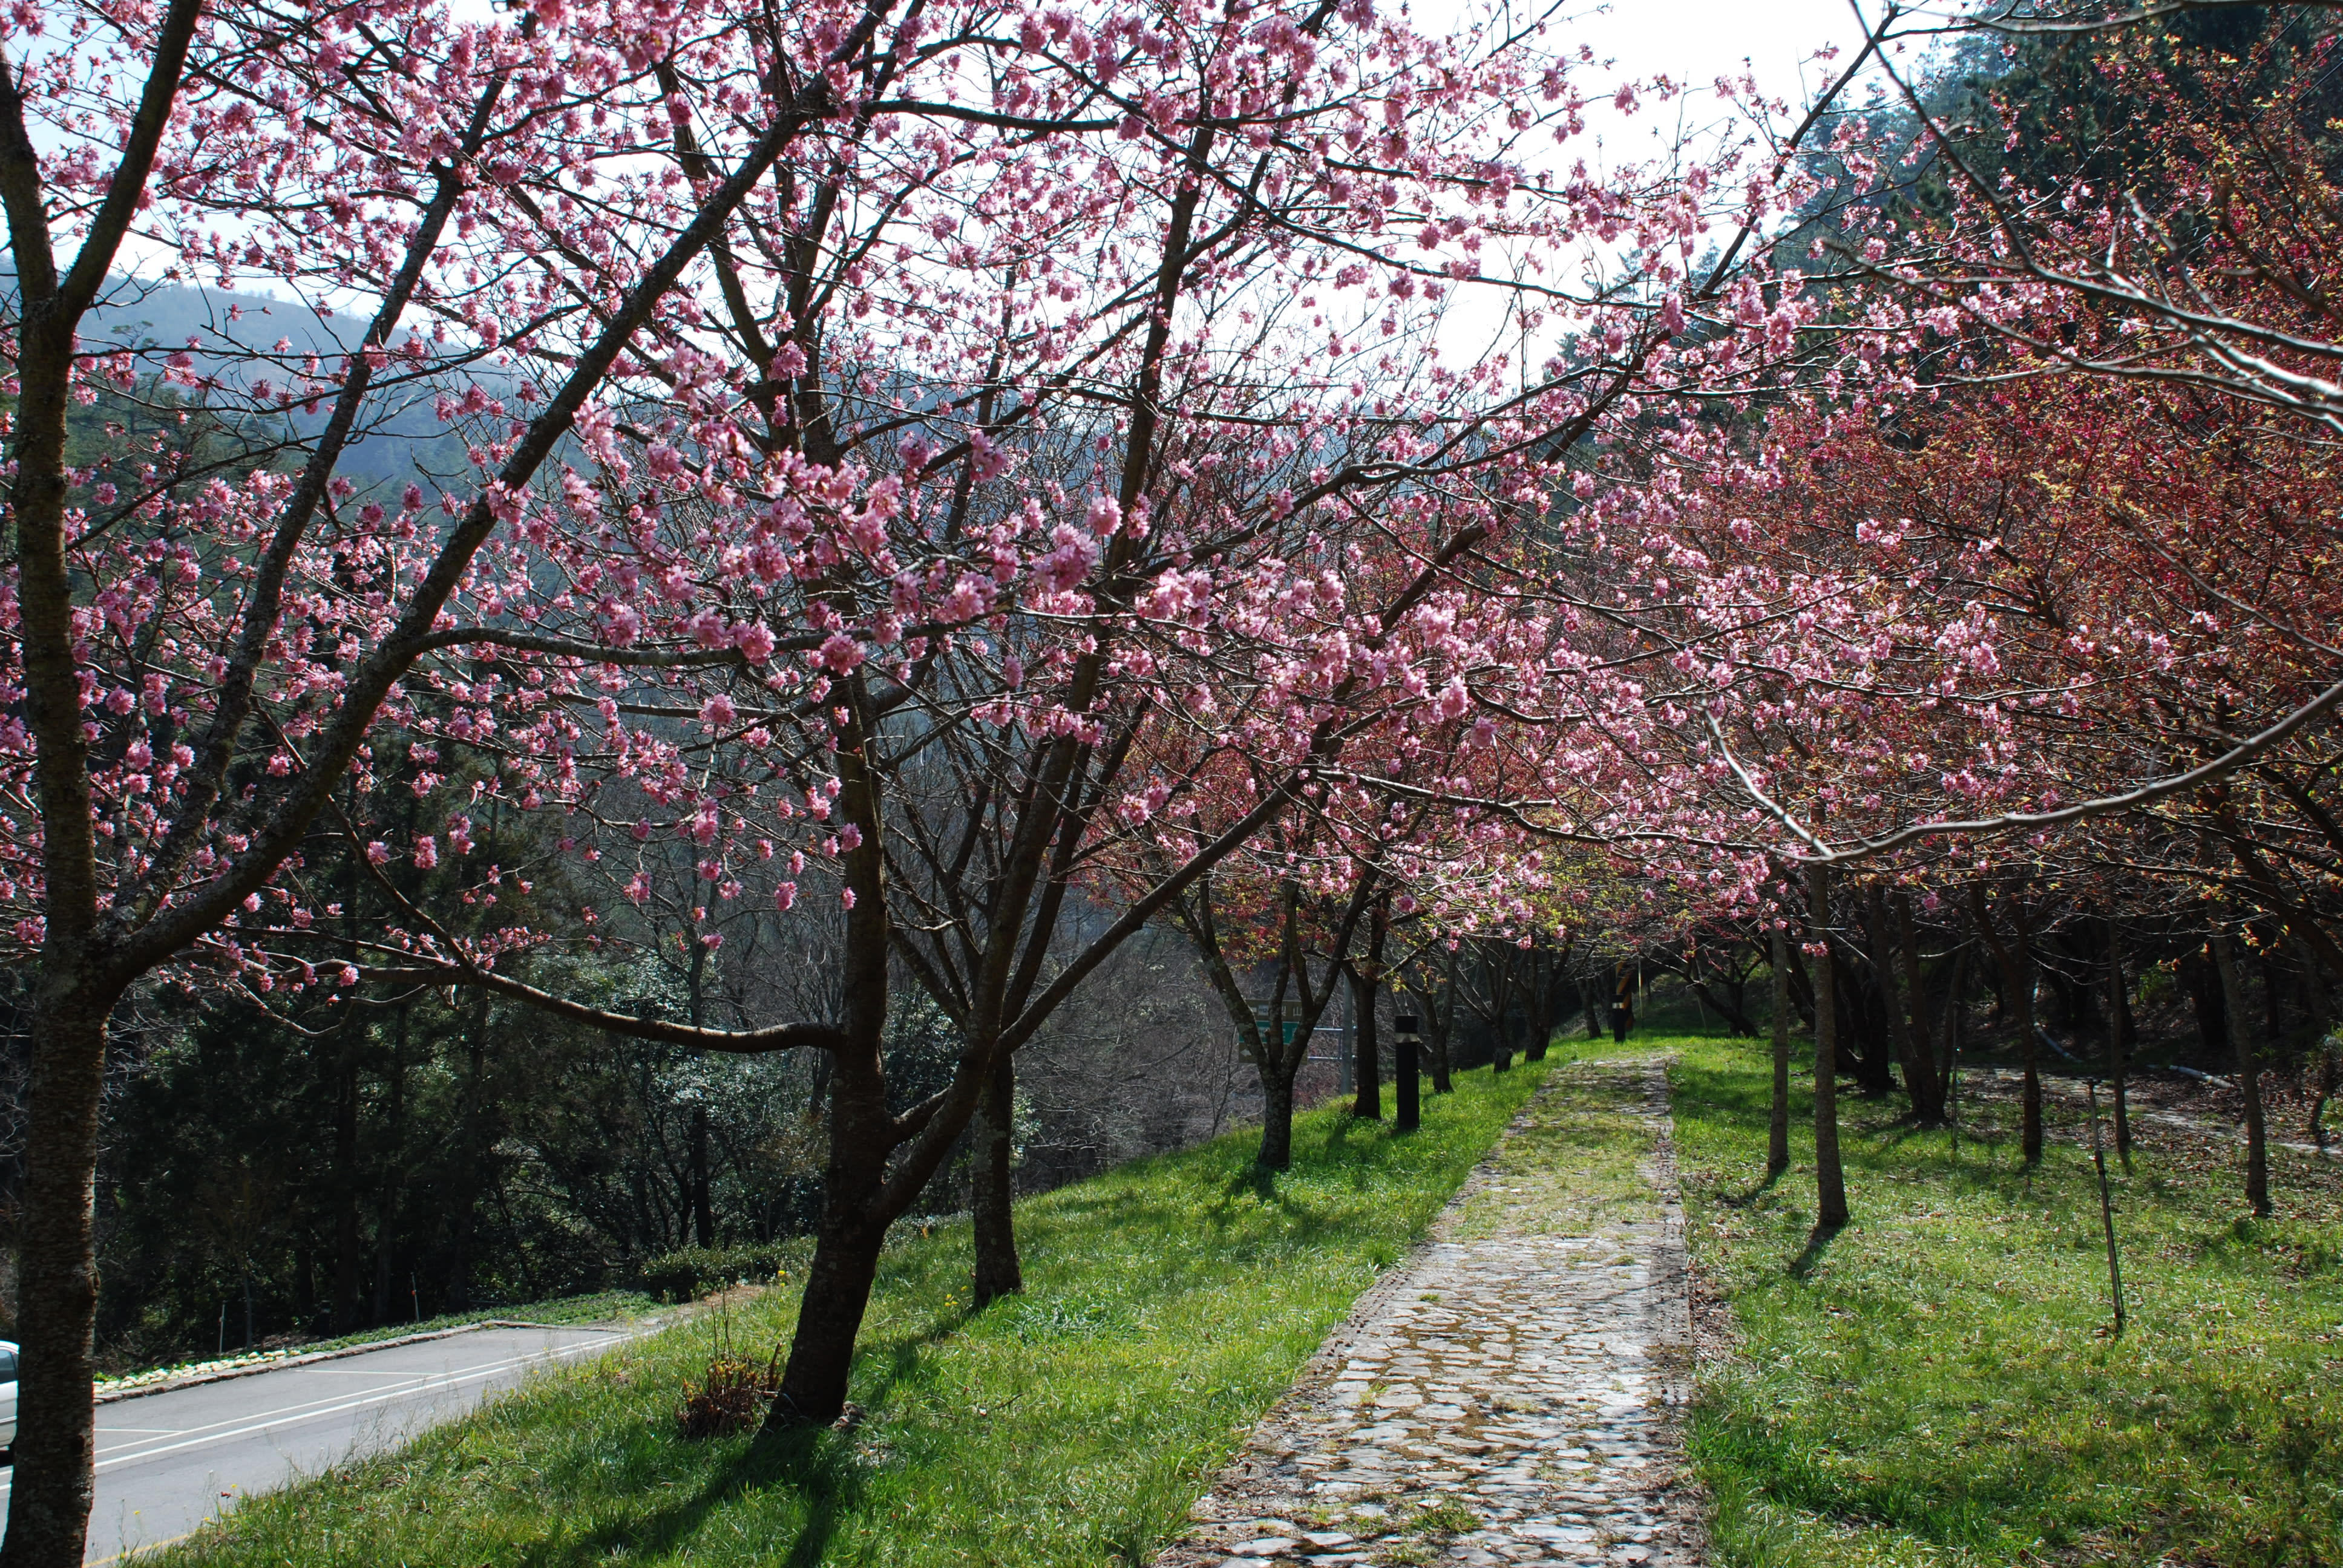 Wuling Farm cherry blossom path